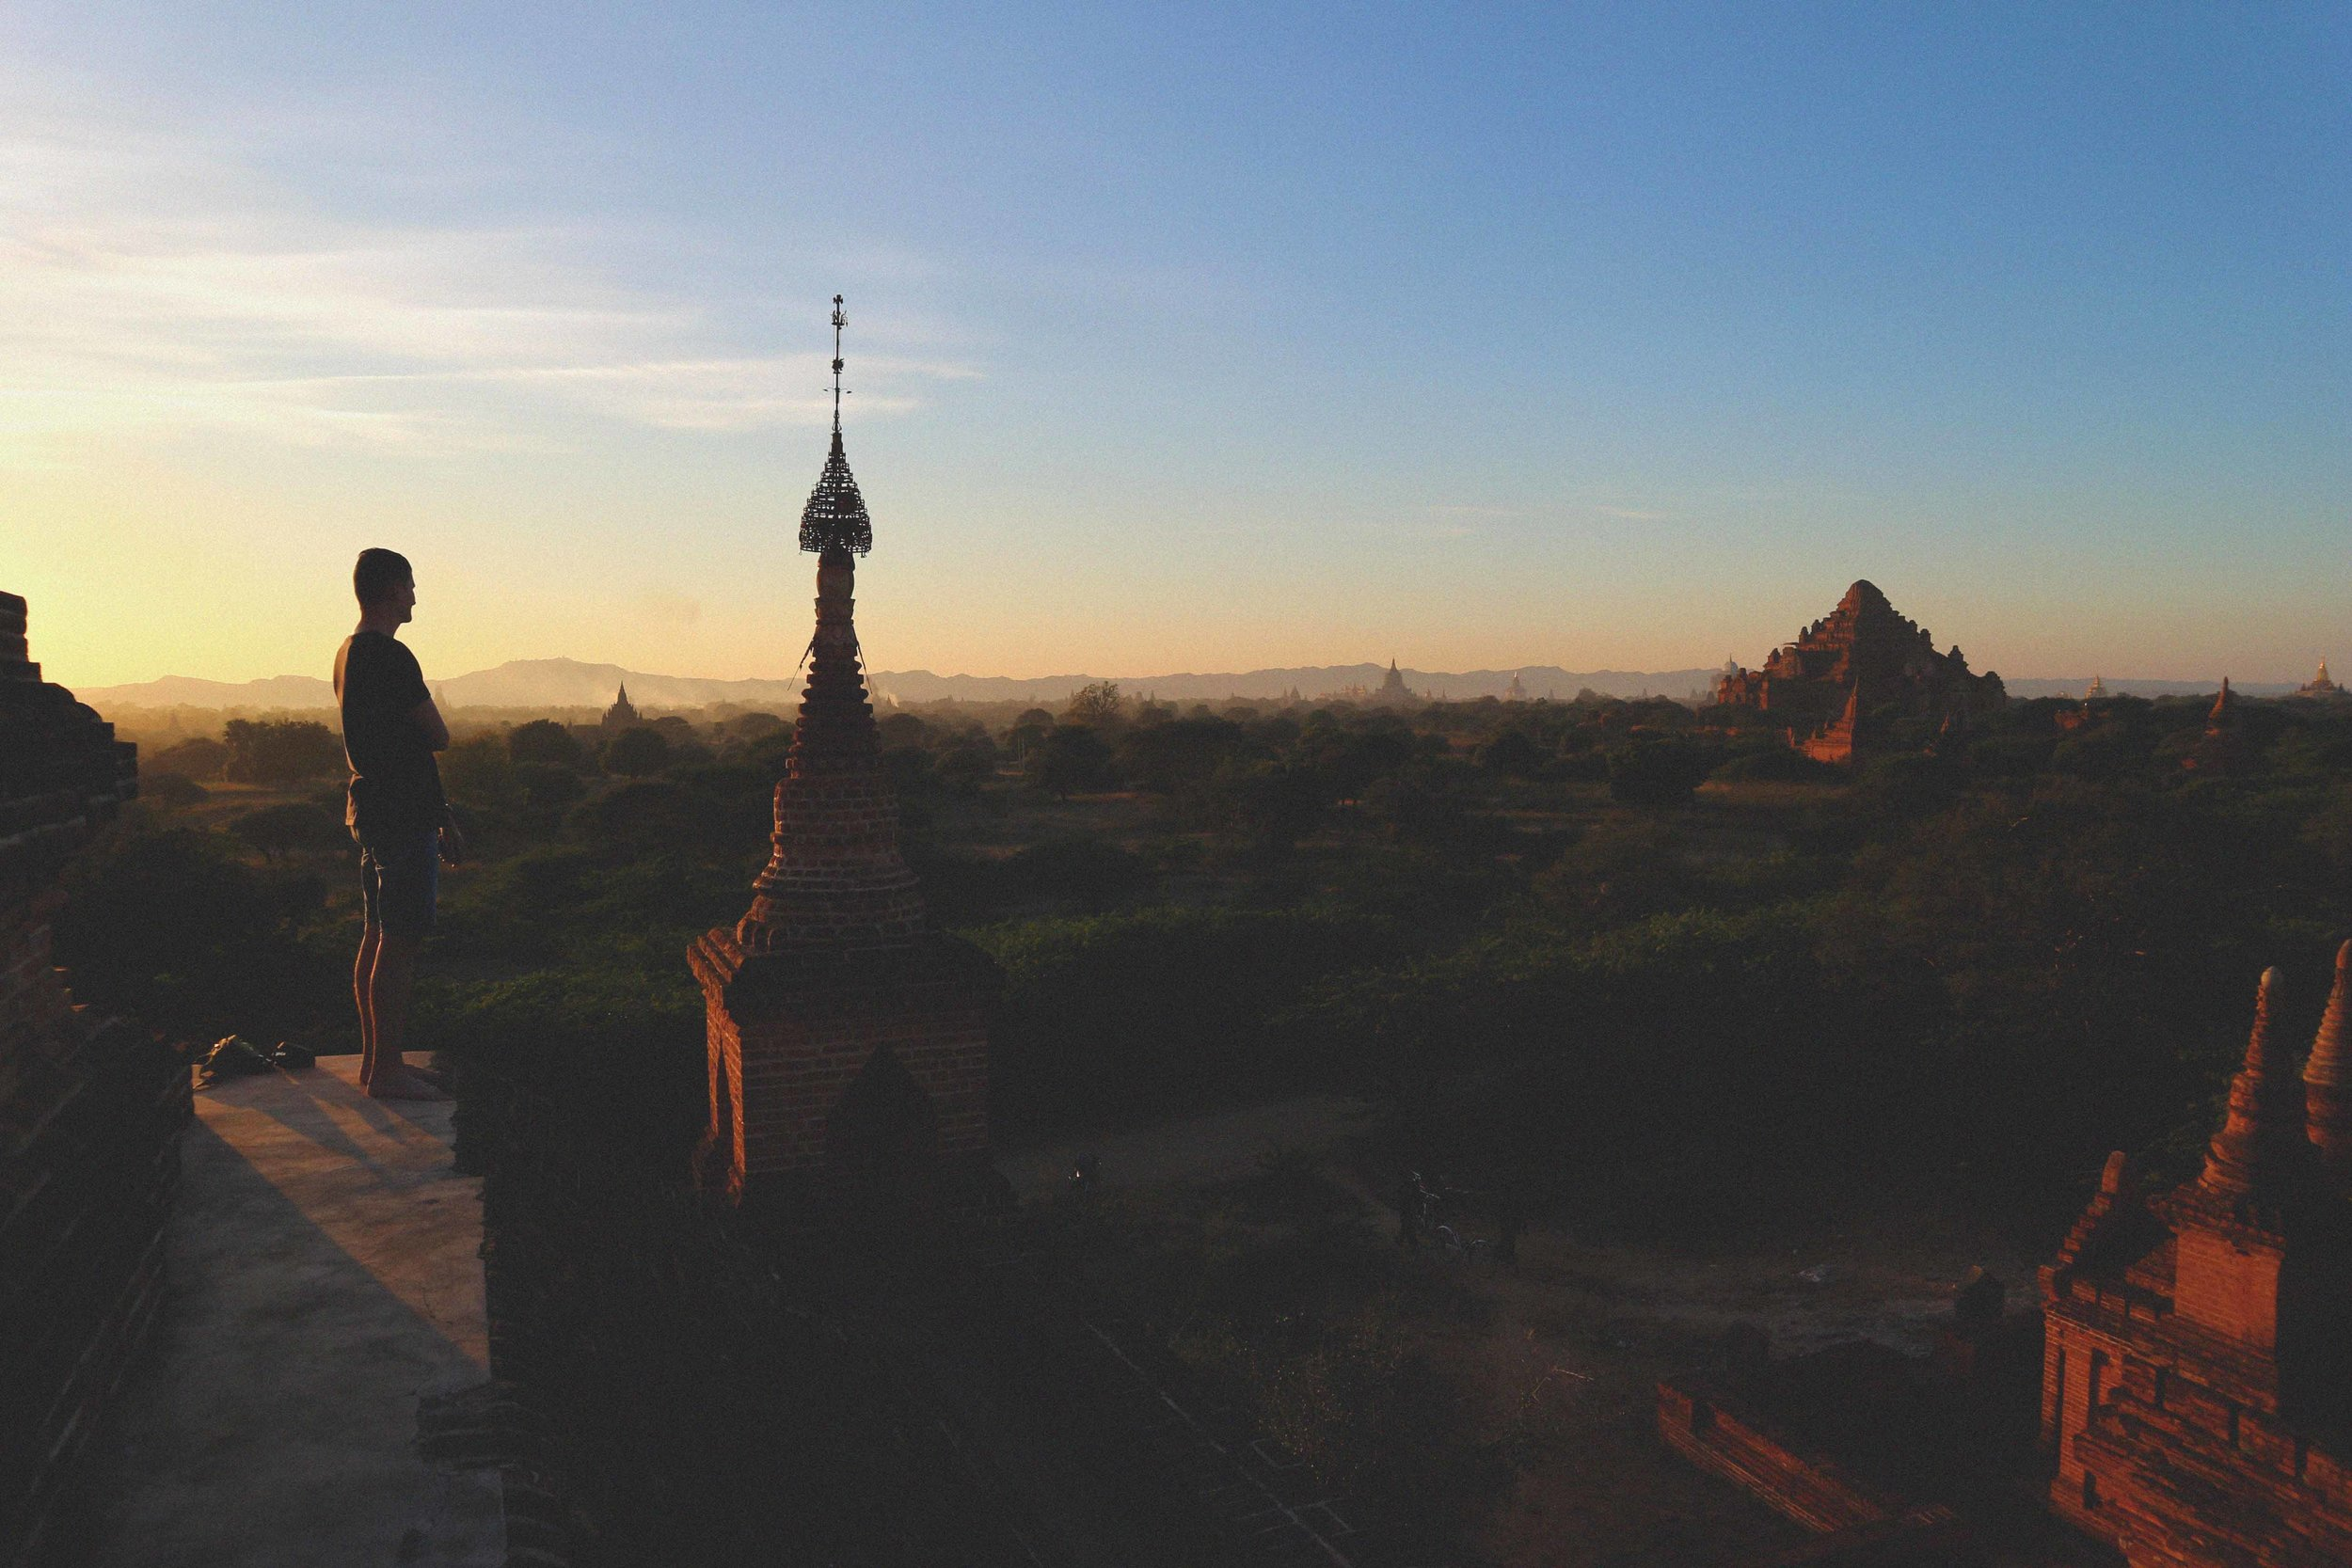 On one of the temple roofs watching a sunset